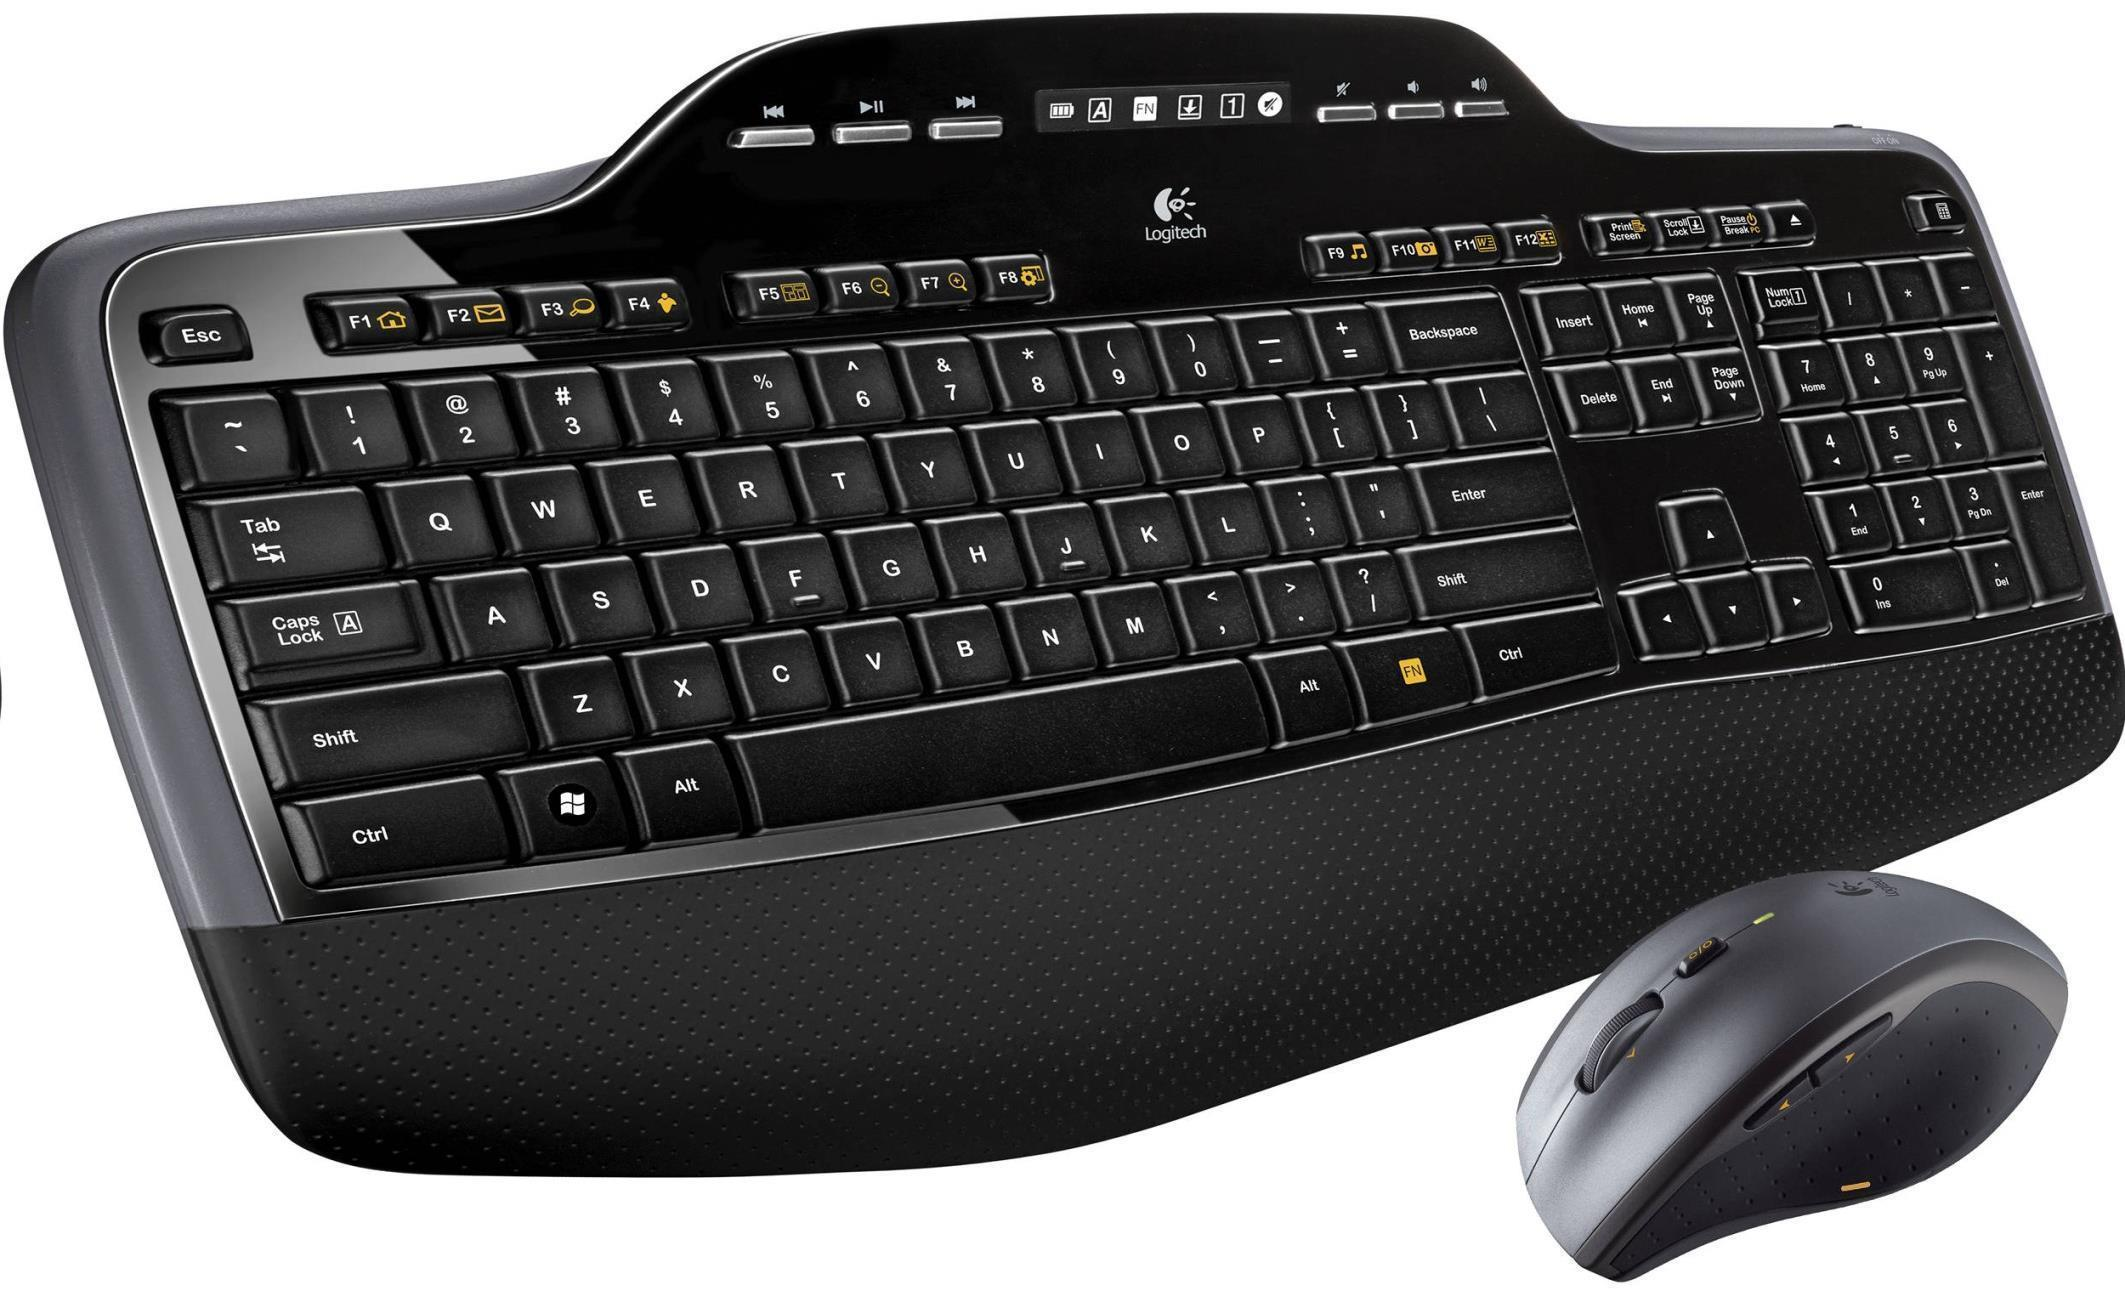 Logitech Wireless Desktop MK710 Keyboard & Mouse